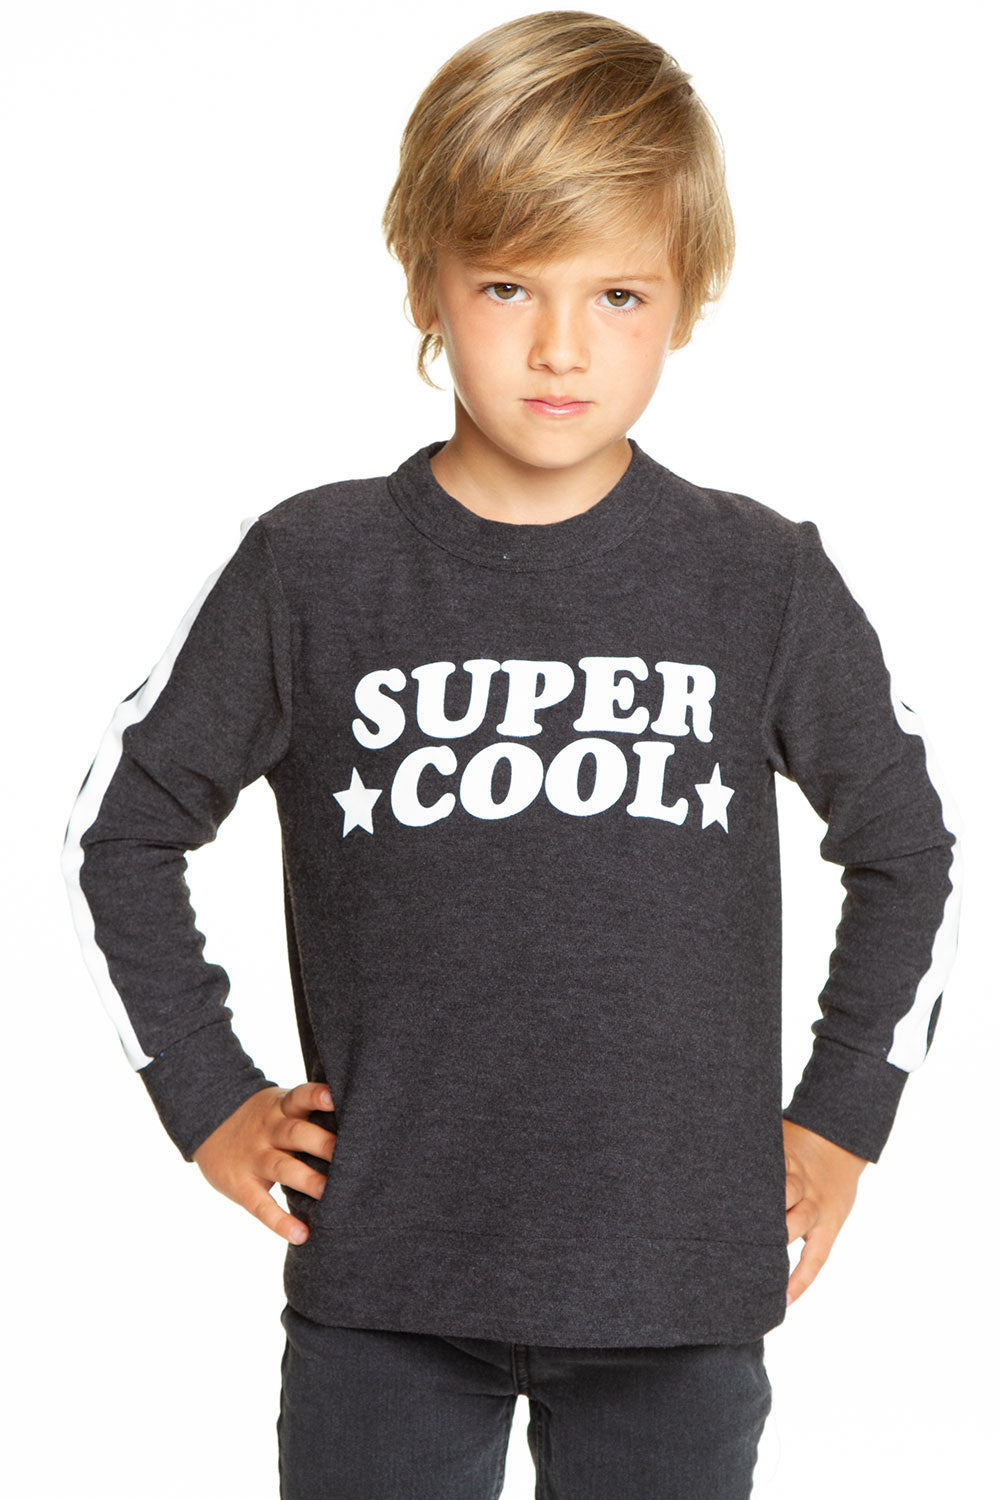 Super Cool BOYS chaserbrand4.myshopify.com